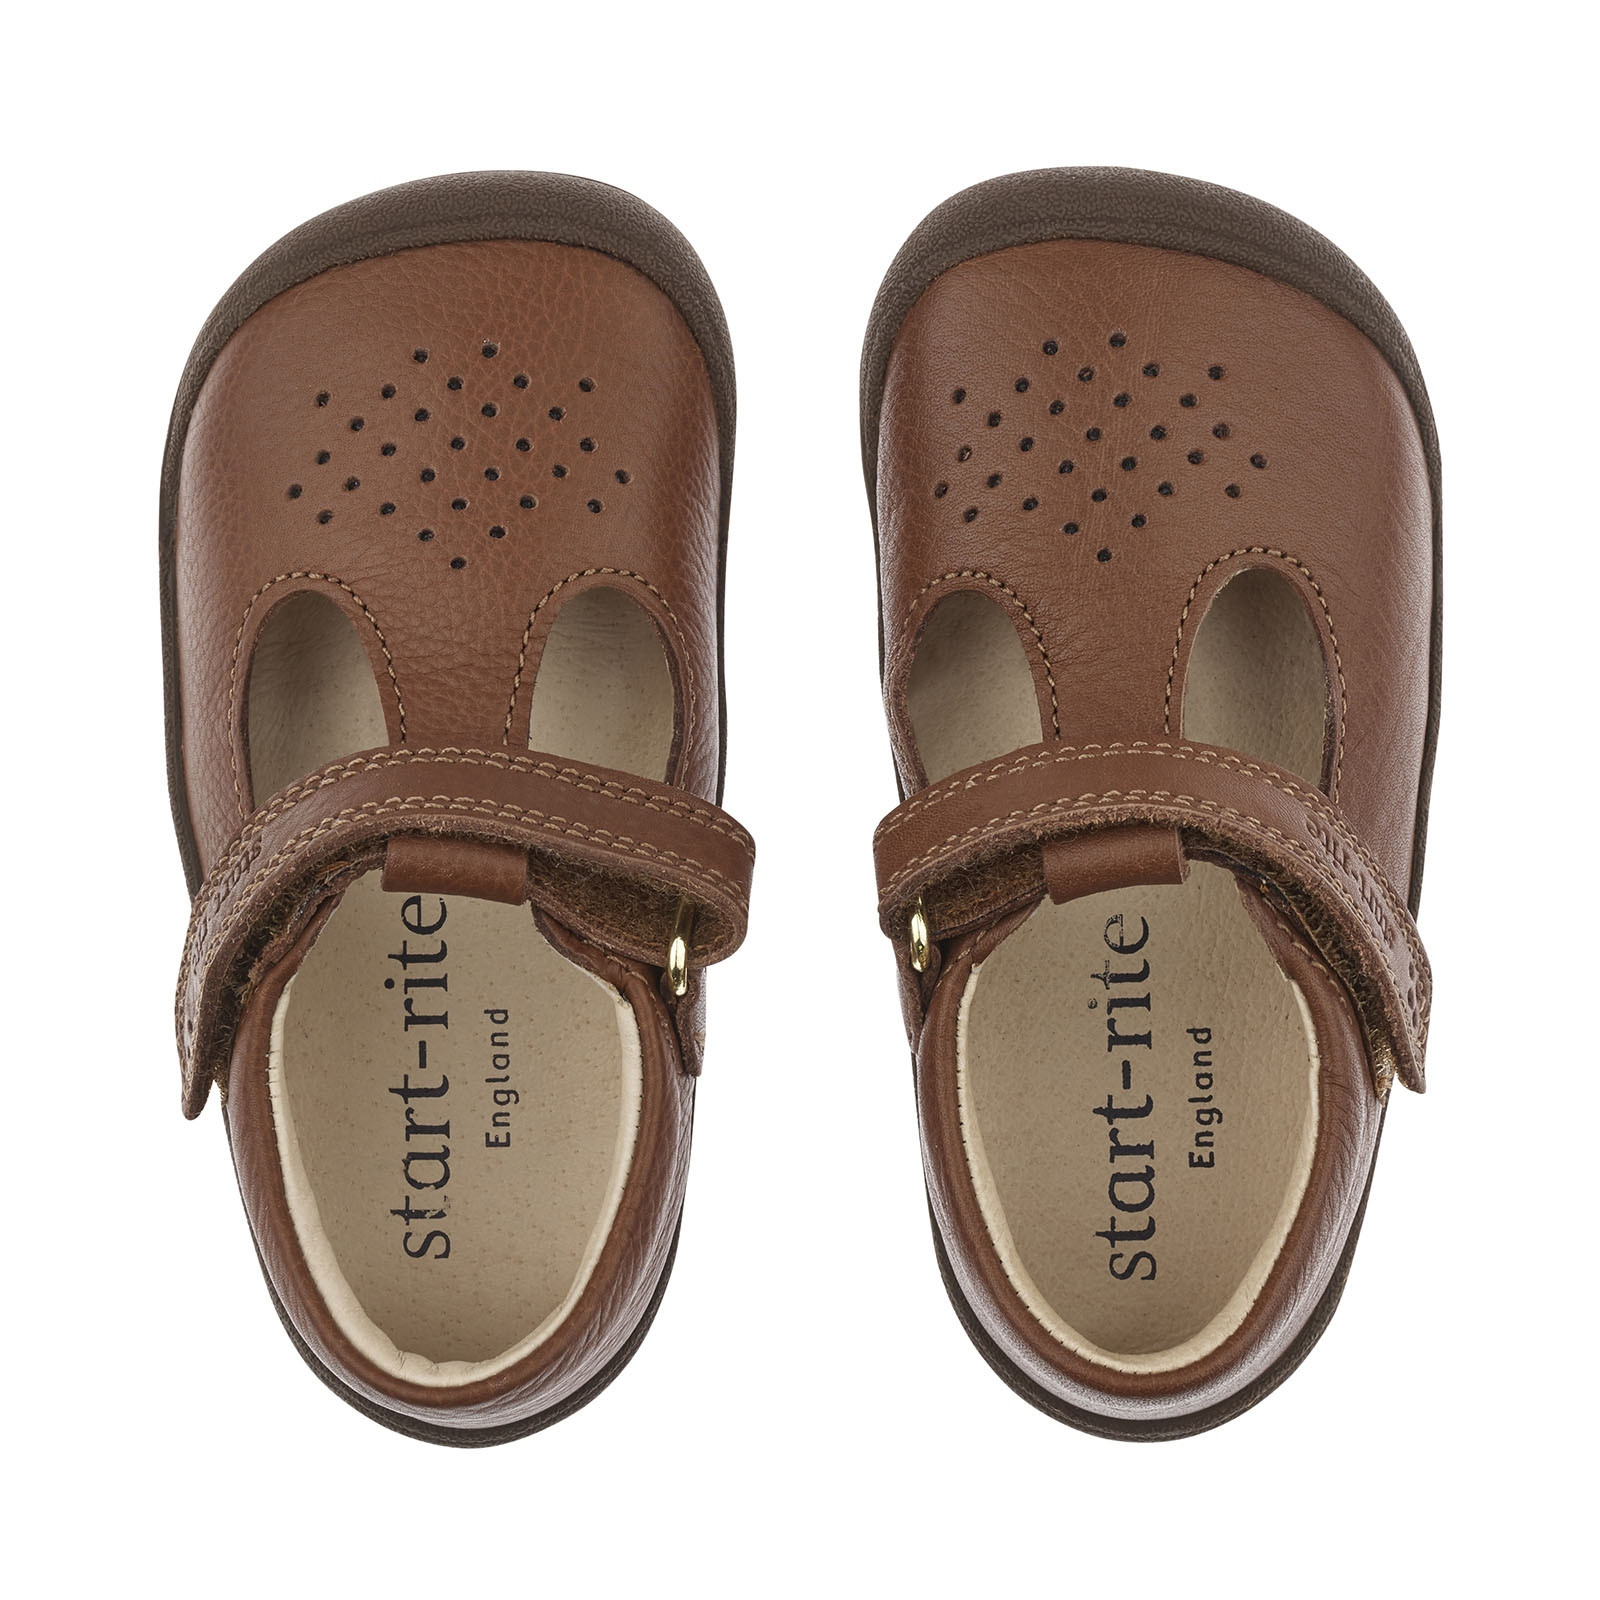 Baby boys t bar sandals in brown